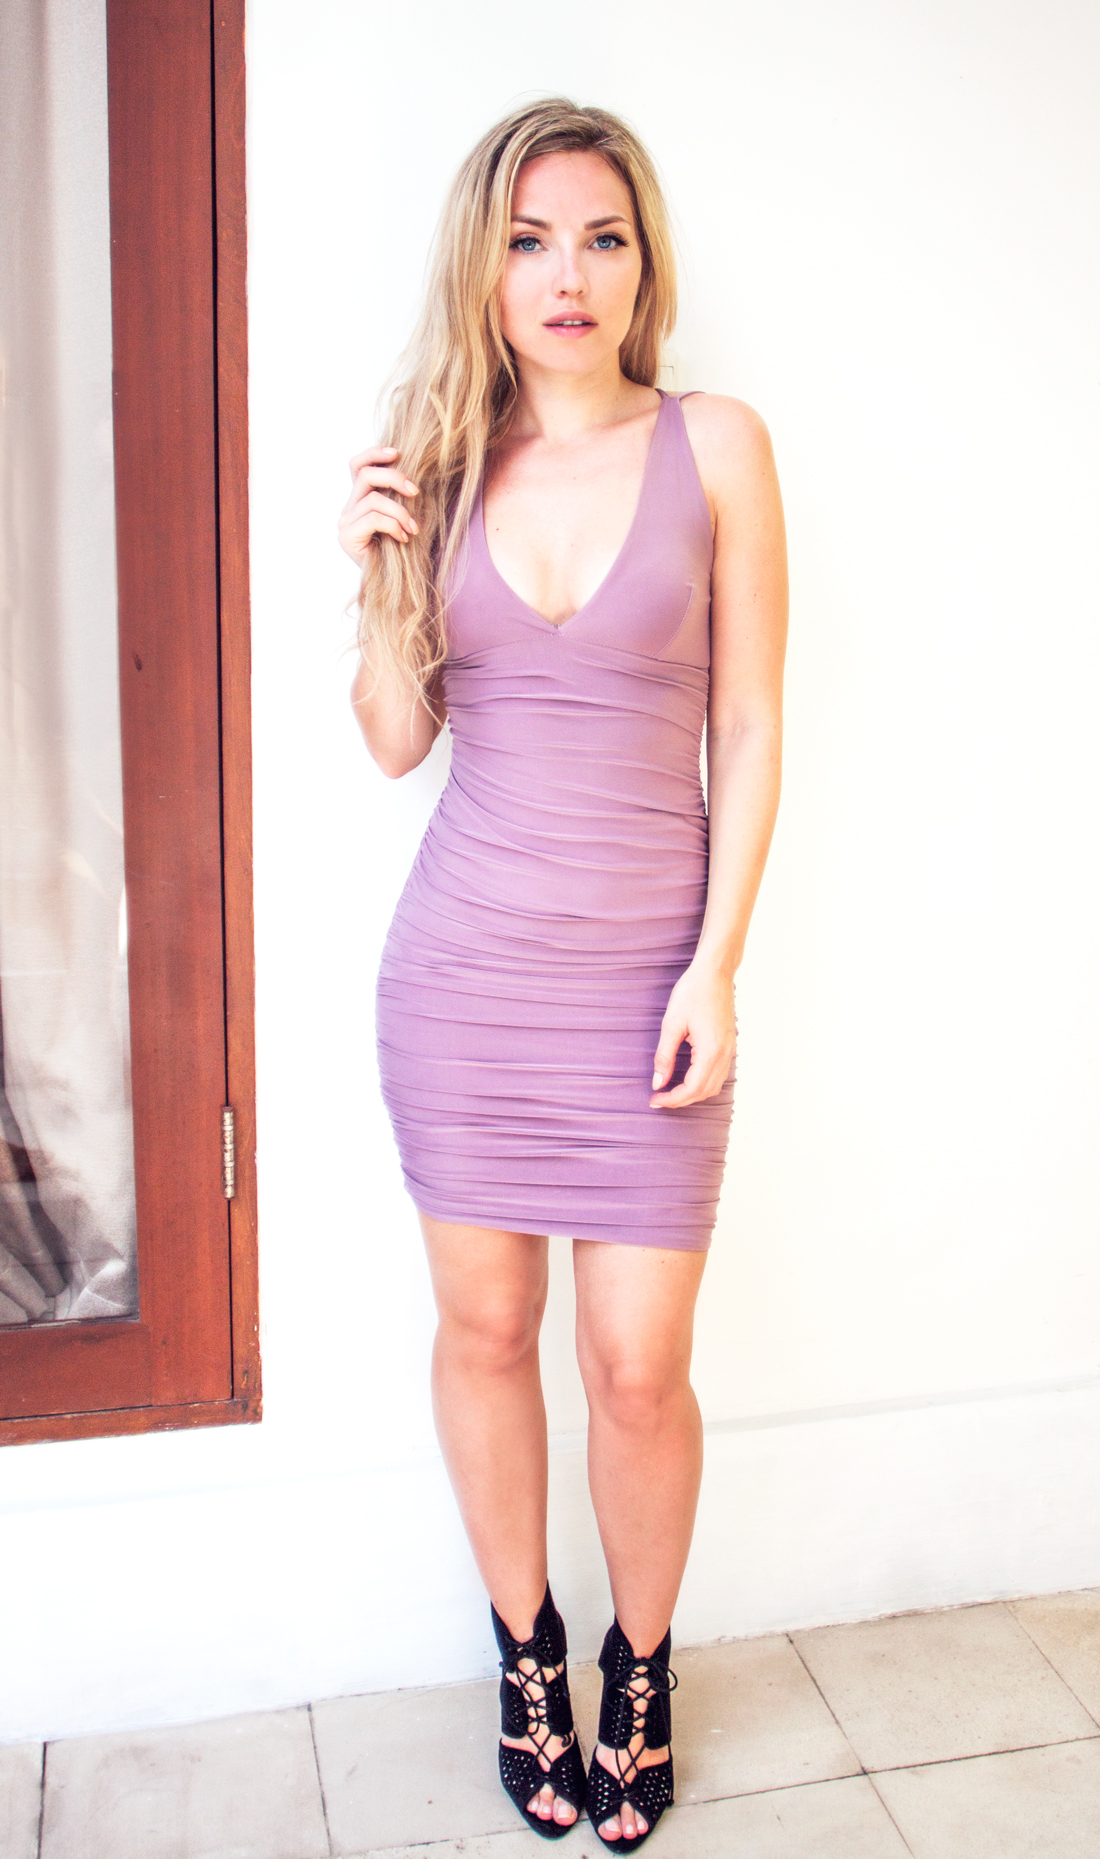 nelly dress, nelly cleaning, nelly body contour, nelly purple dress, seminyak villa, seminyak pool, bali, bali outfit, purple tight dress, rapunzel clip on set, rapunzel hair extensions, rapunzel of sweden, rapunzel of sweden clip in hair extensions, cherryblossomstreet